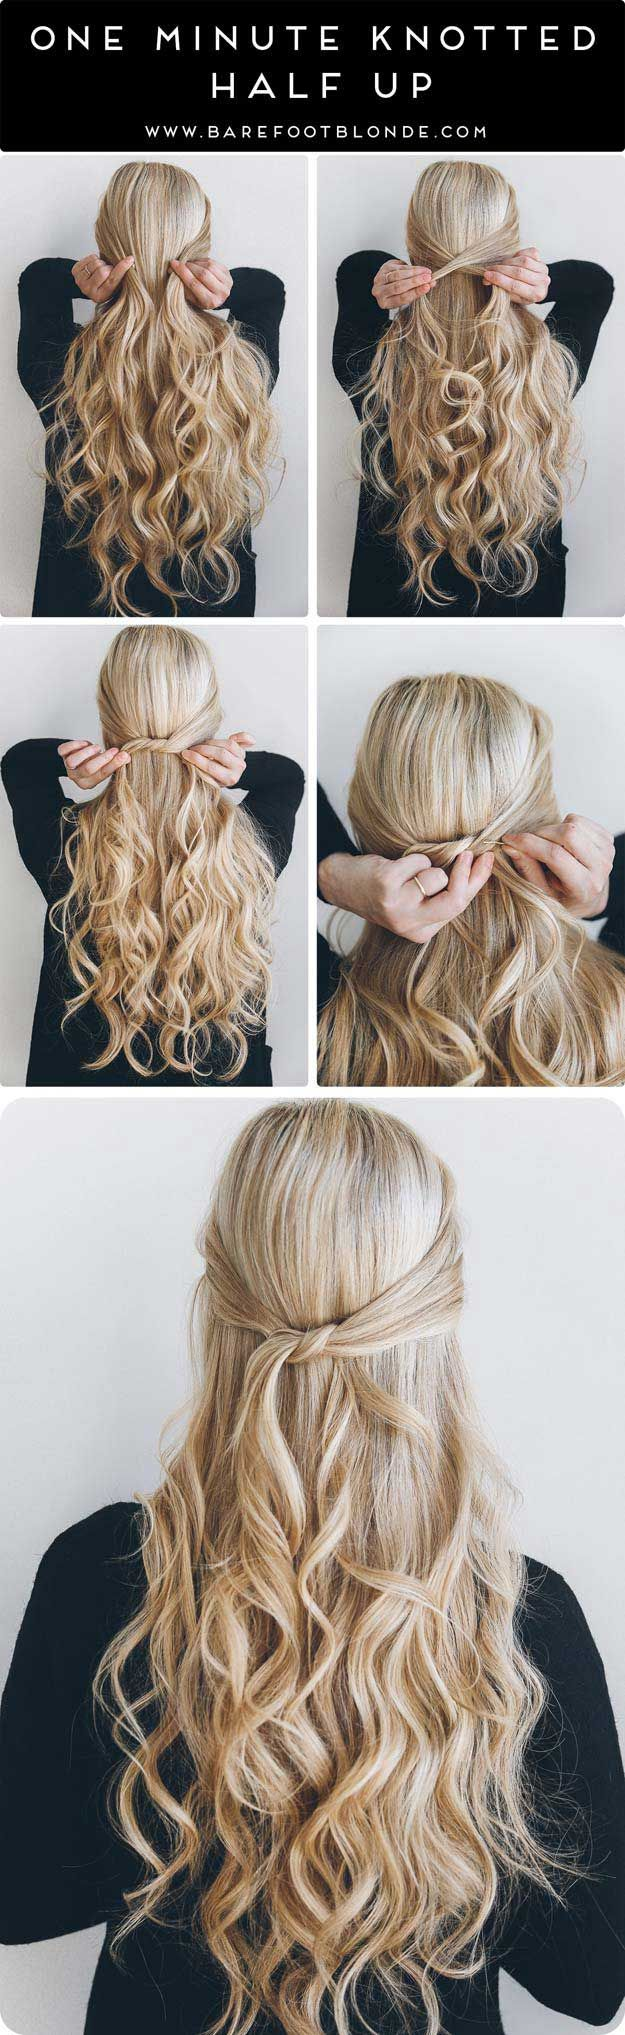 12 Amazing Half up-Half down Hairstyles For Long Hair - The